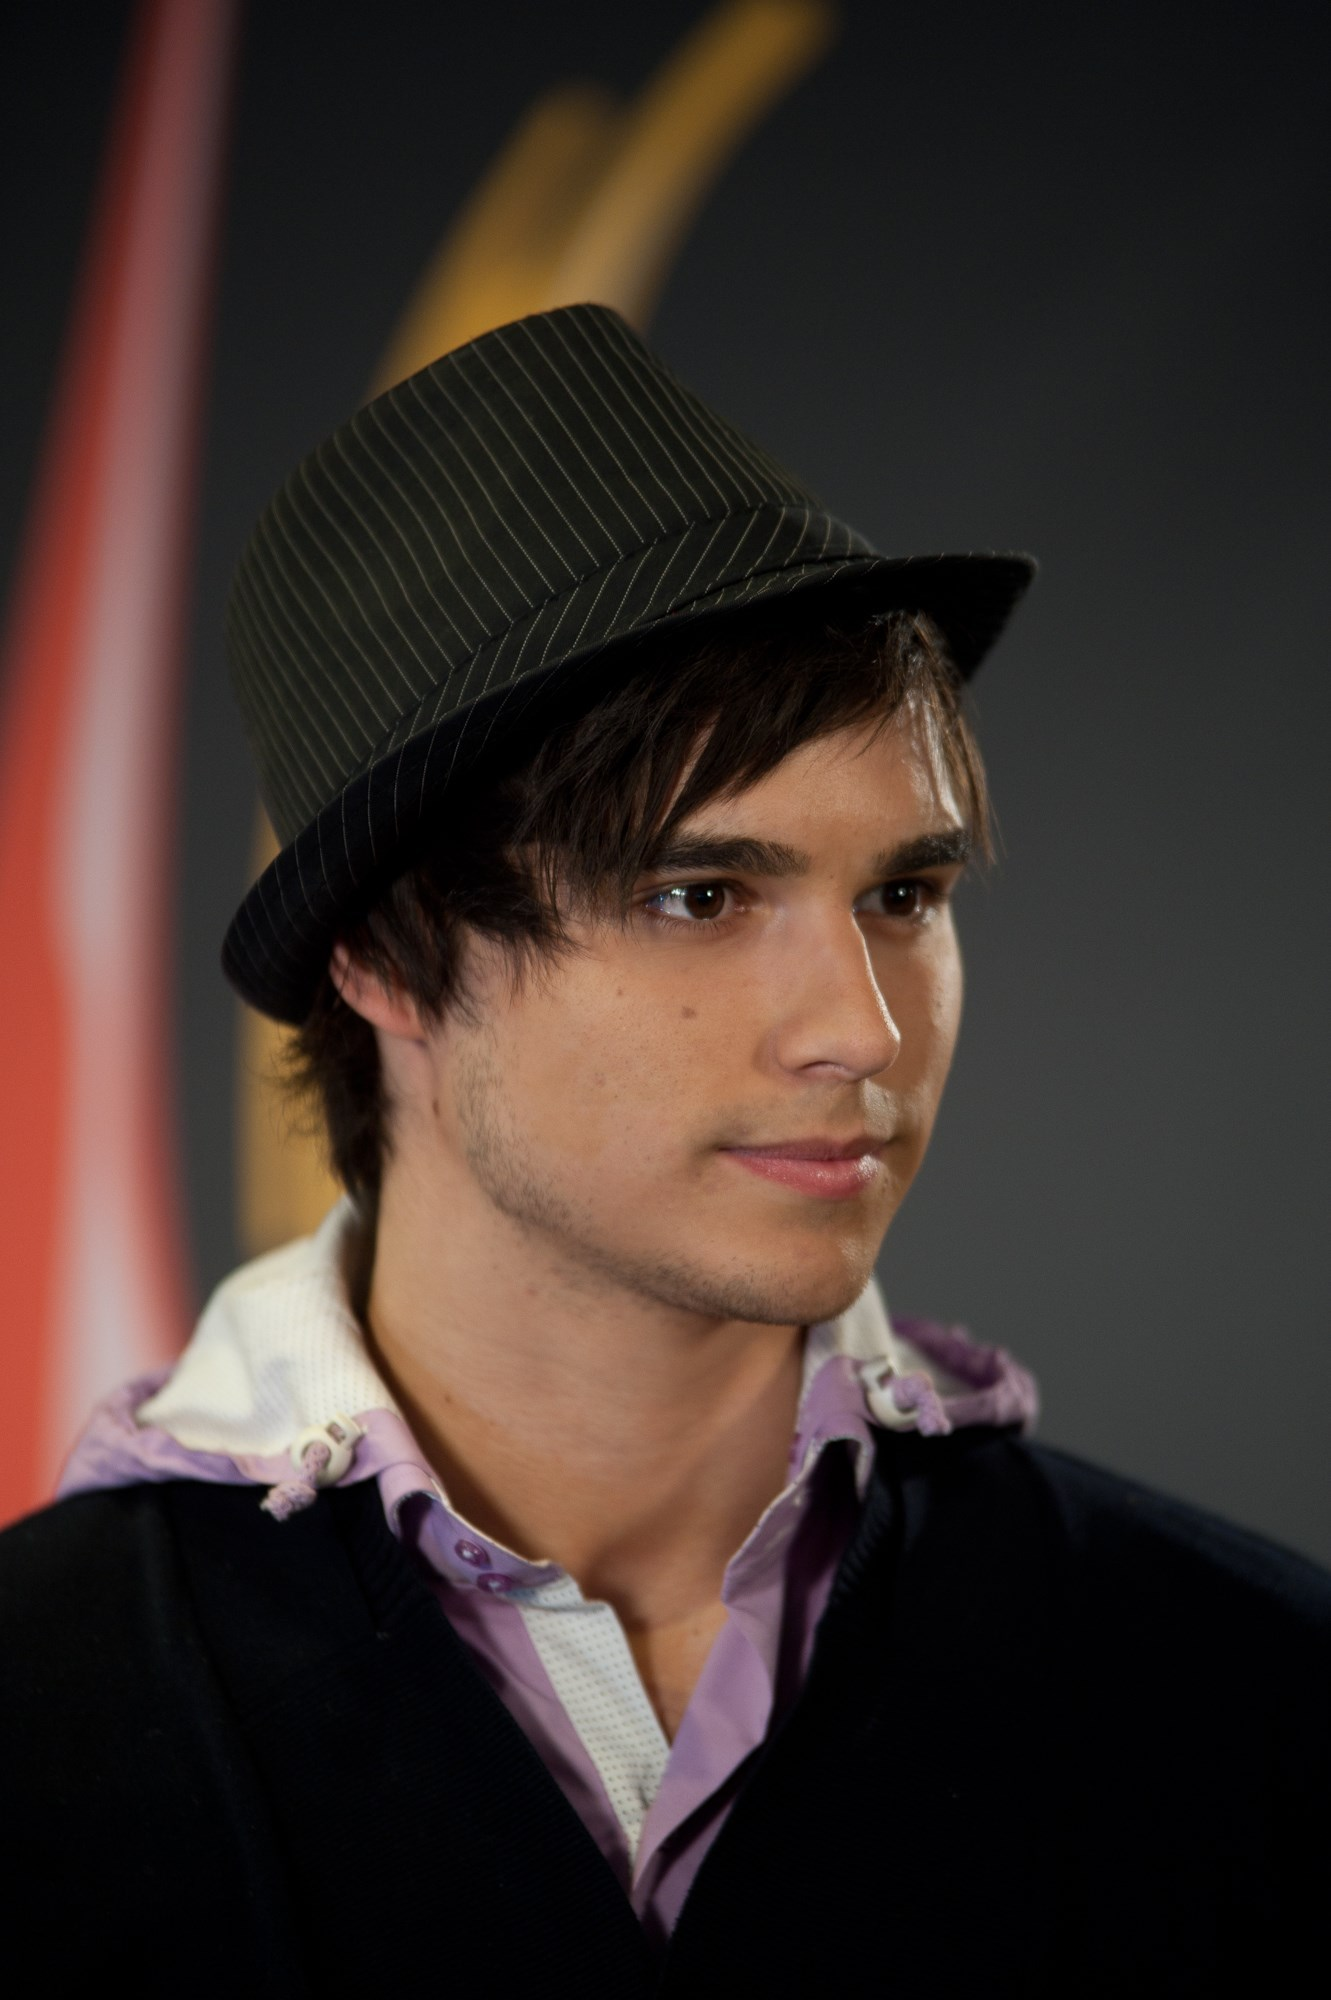 Eric Saade | Known people - famous people news and biographies